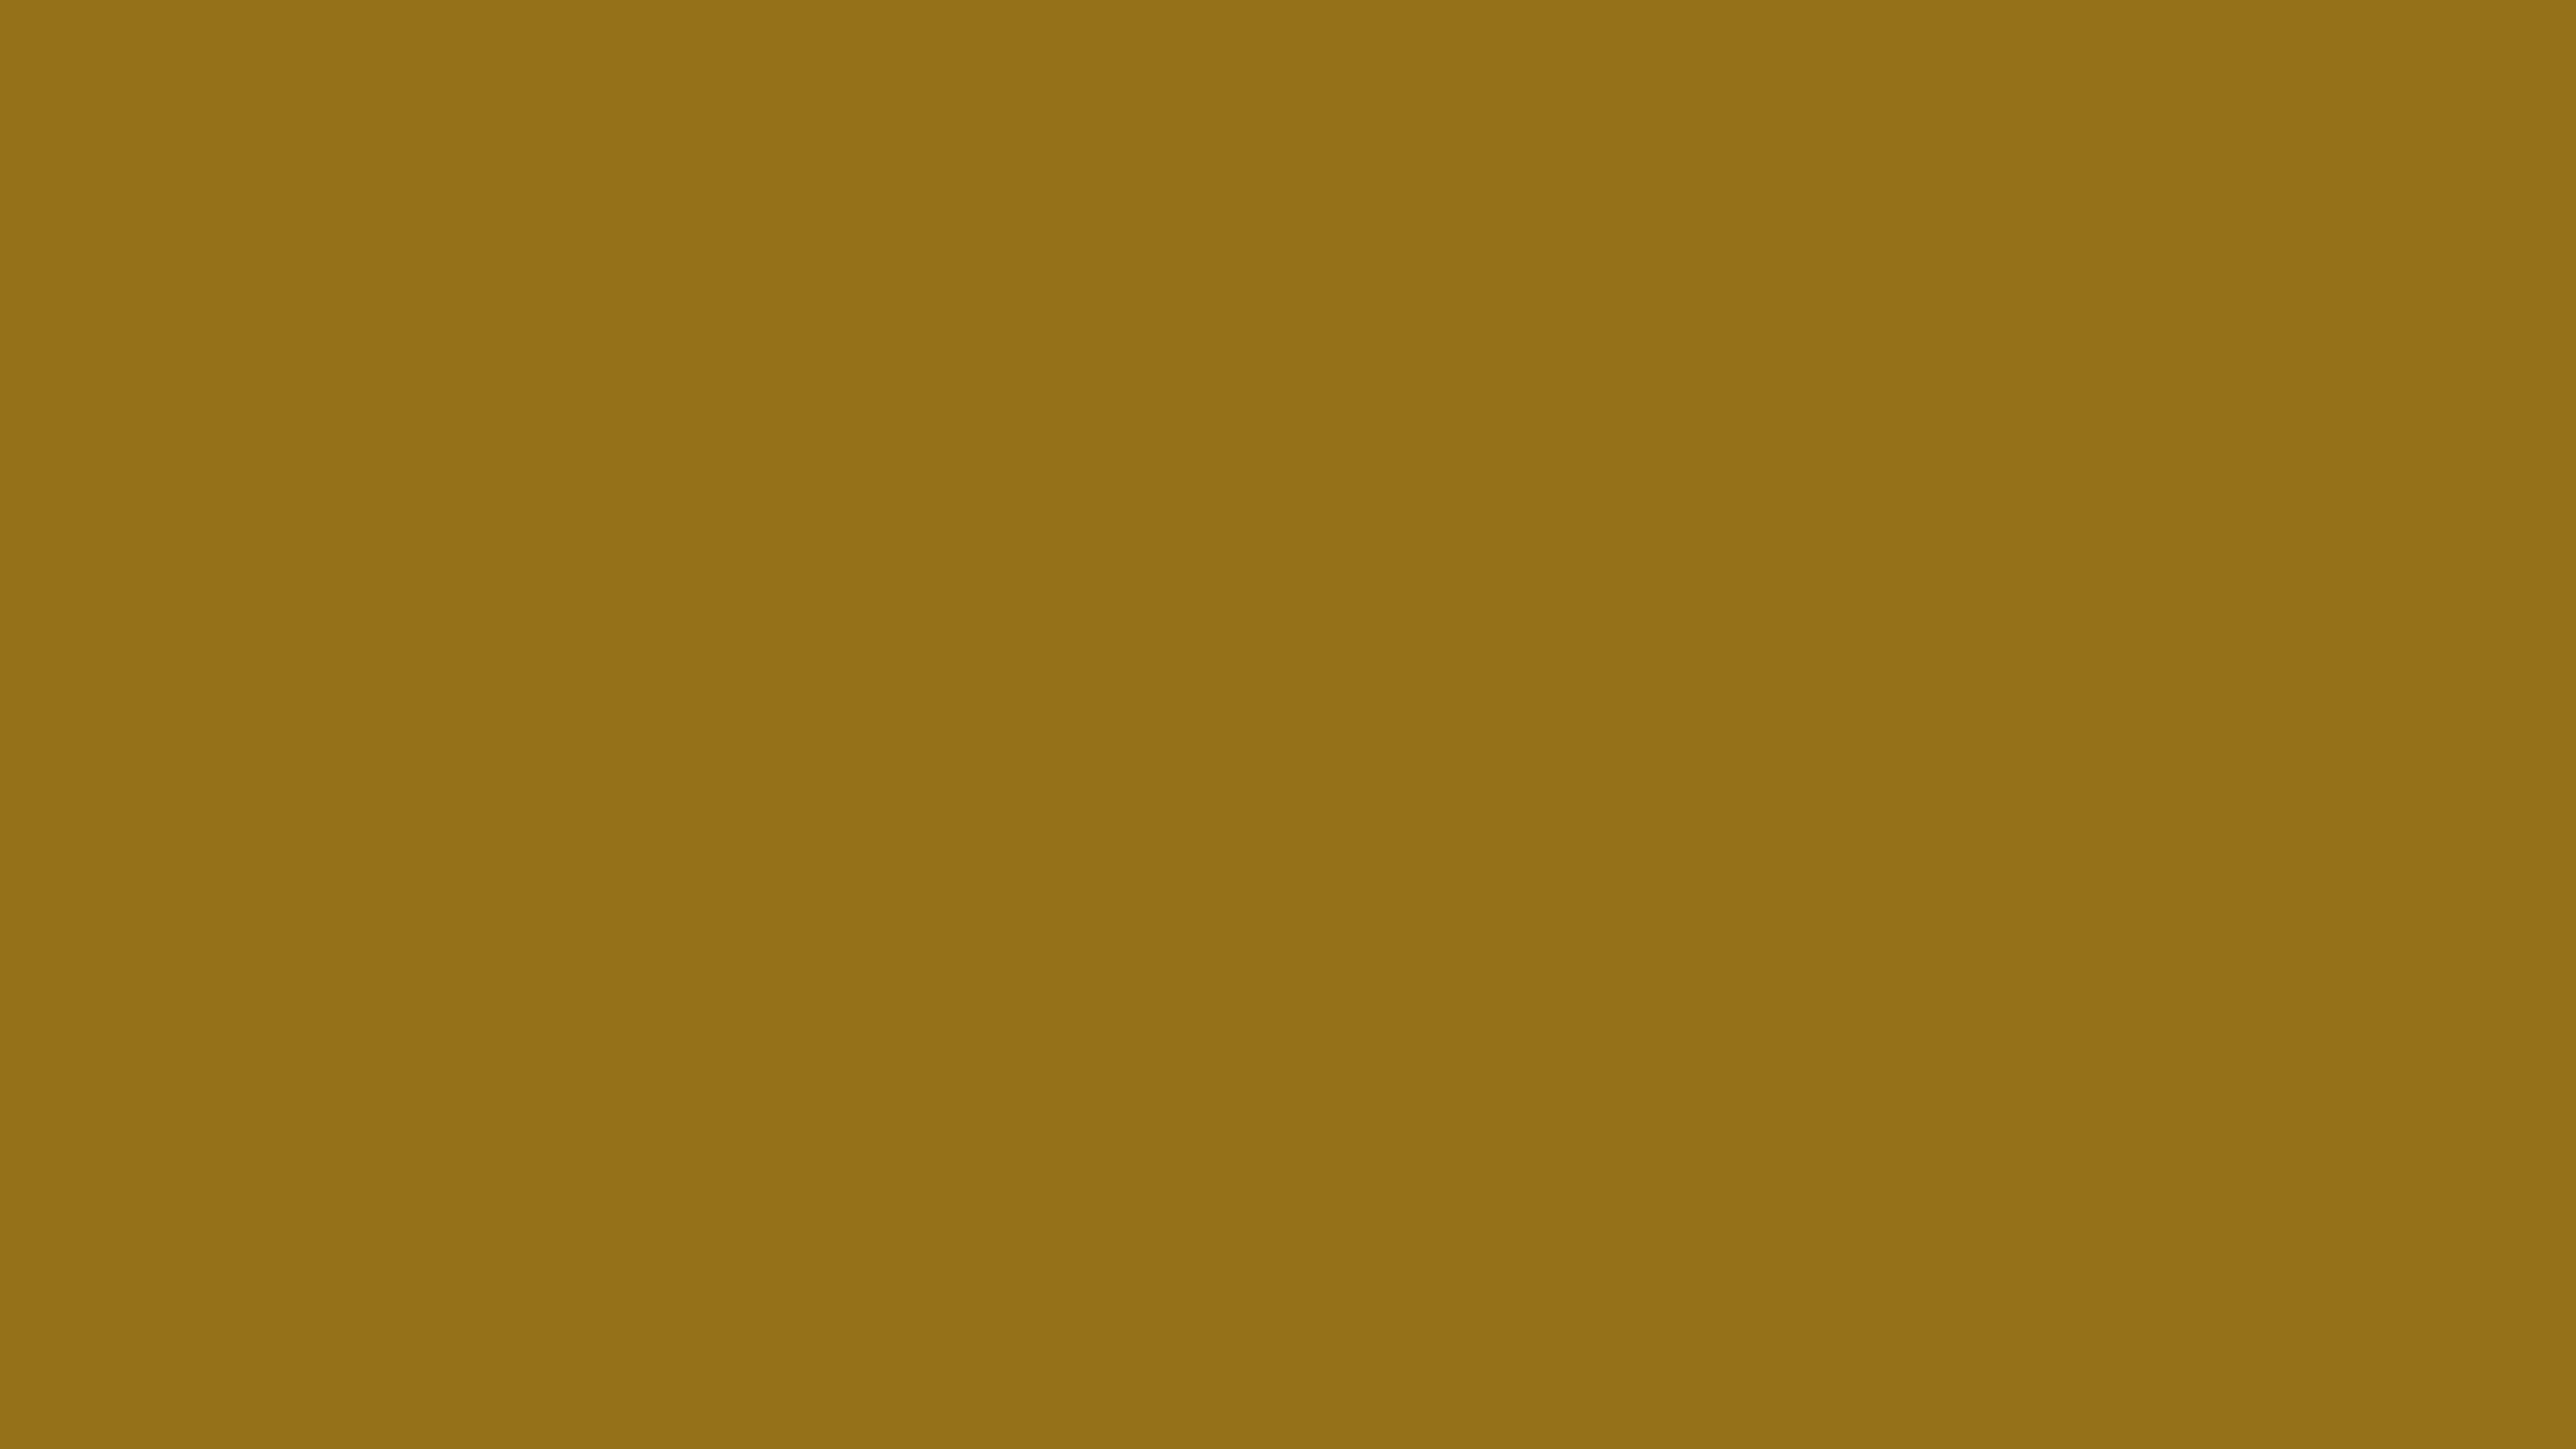 4096x2304 Mode Beige Solid Color Background